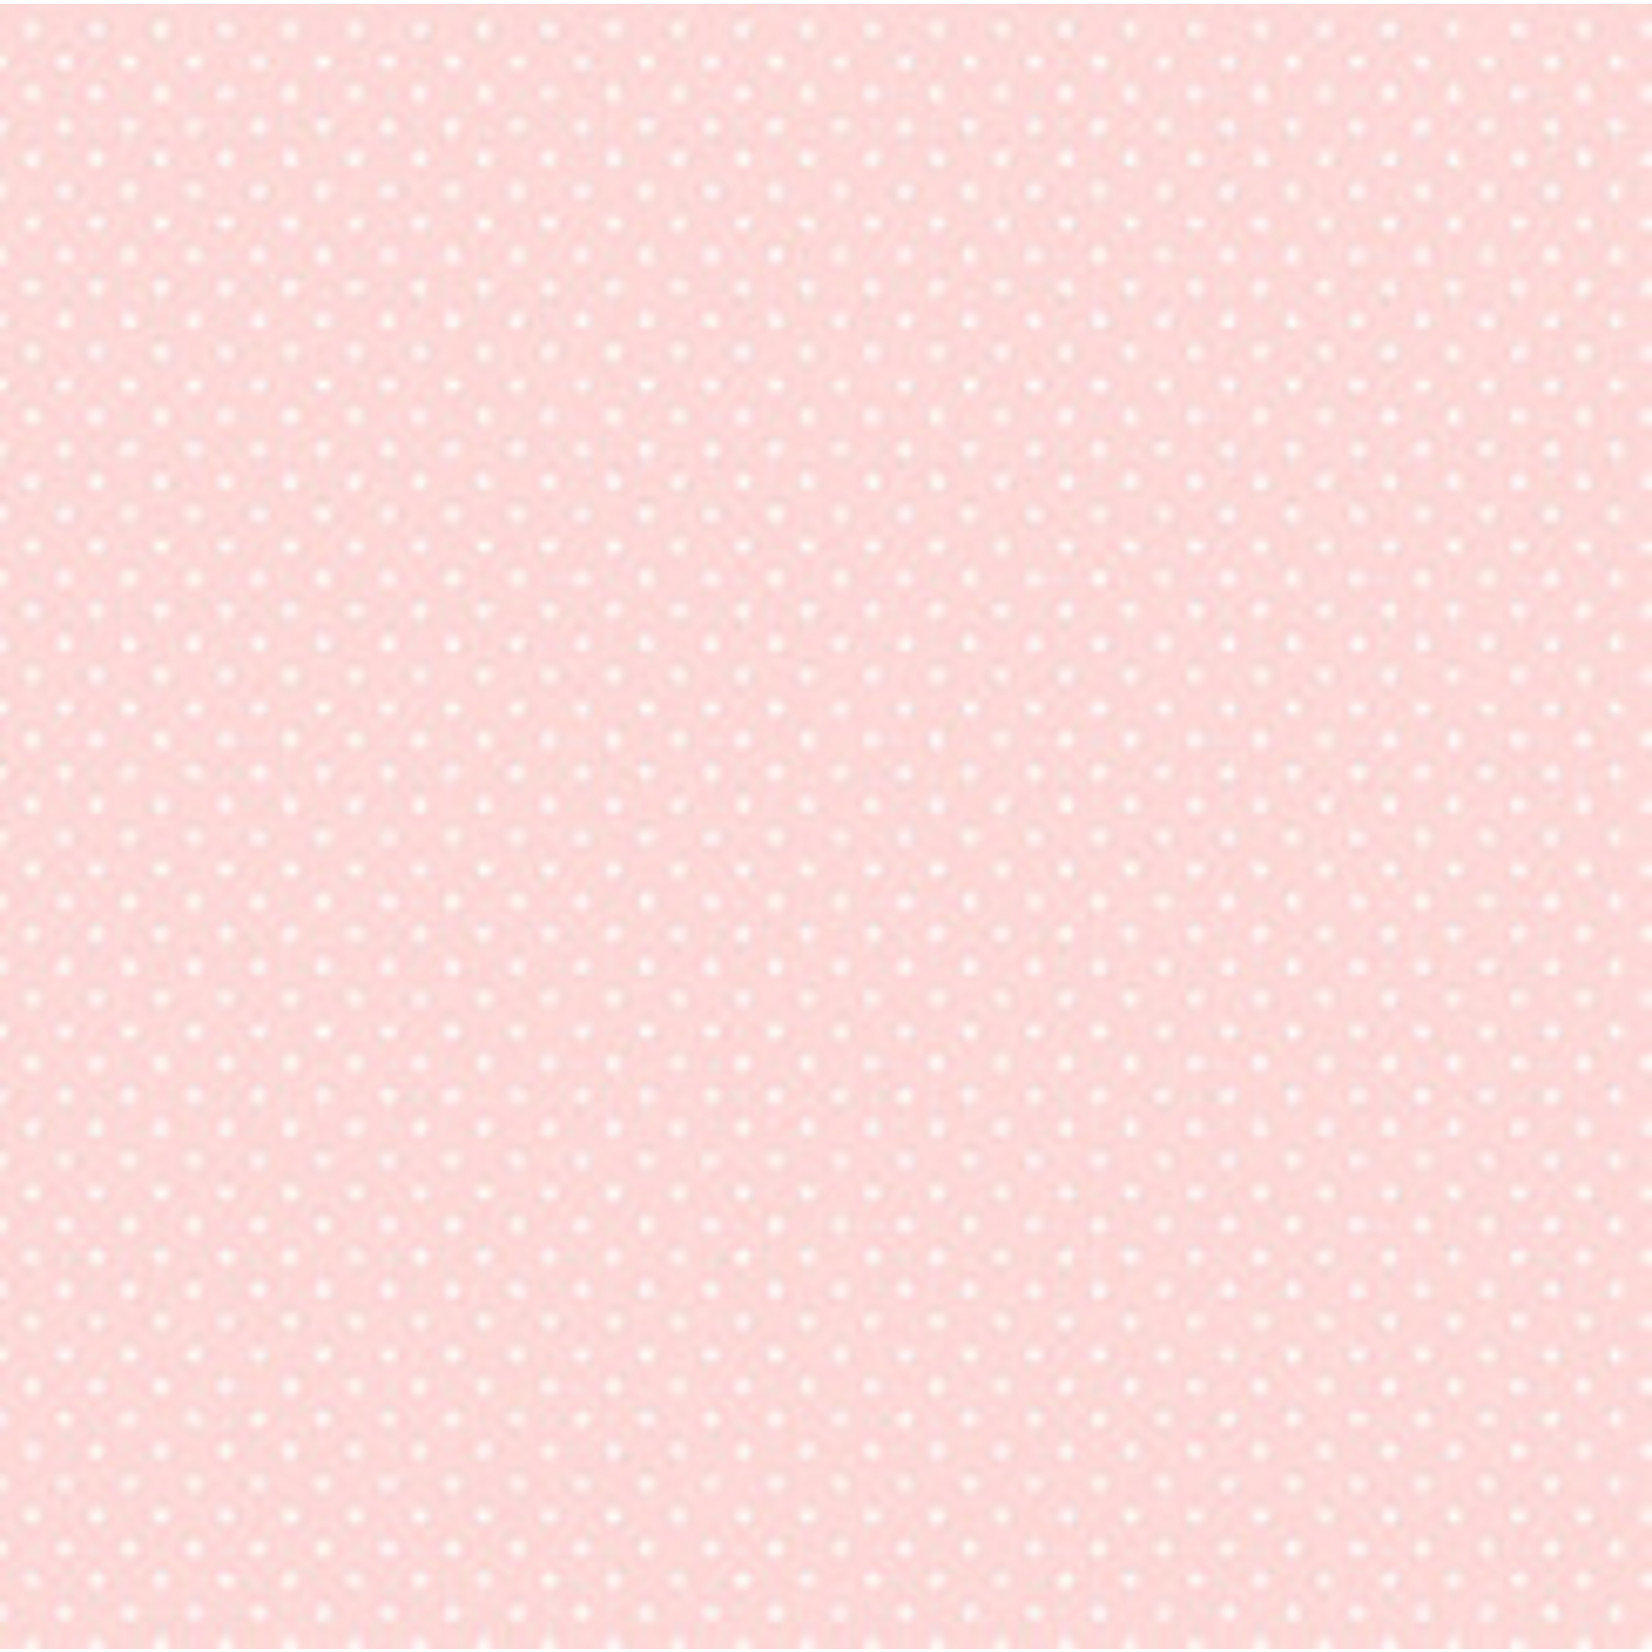 QUILTING TREASURES SORBETS - Mini Dot Pink, /cm or $20